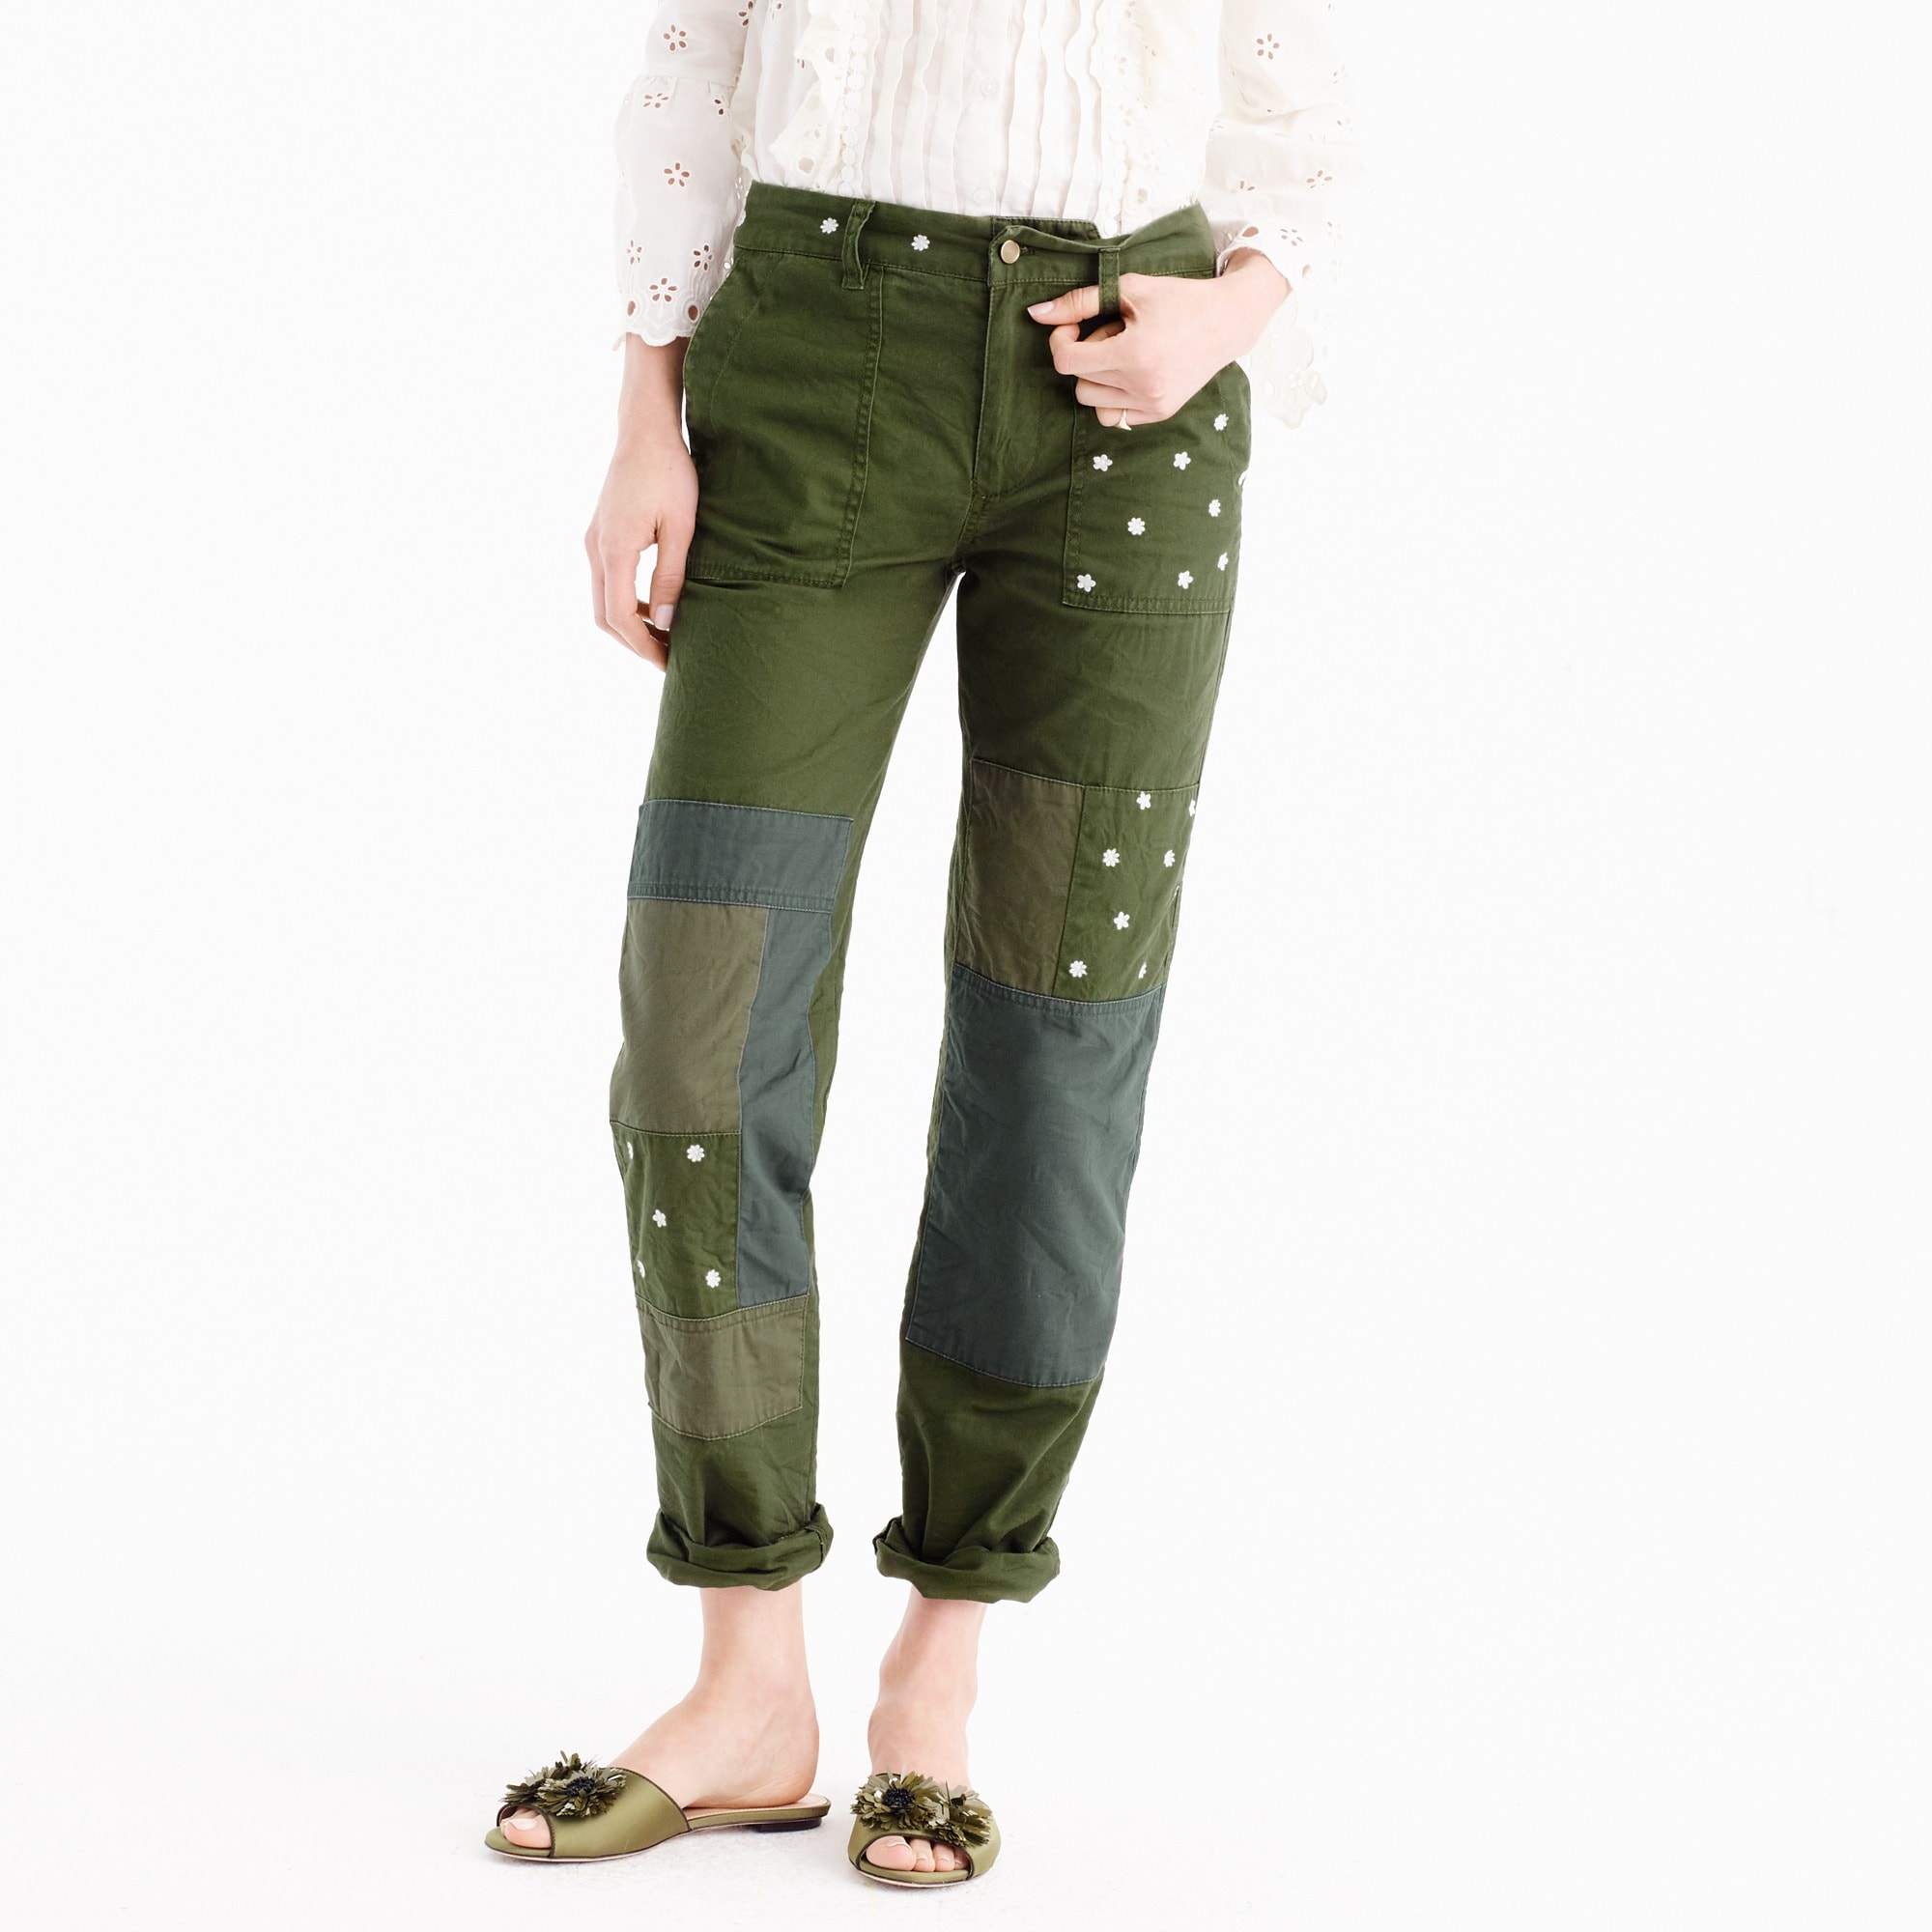 Tall embroidered boyfriend chino pant with patches